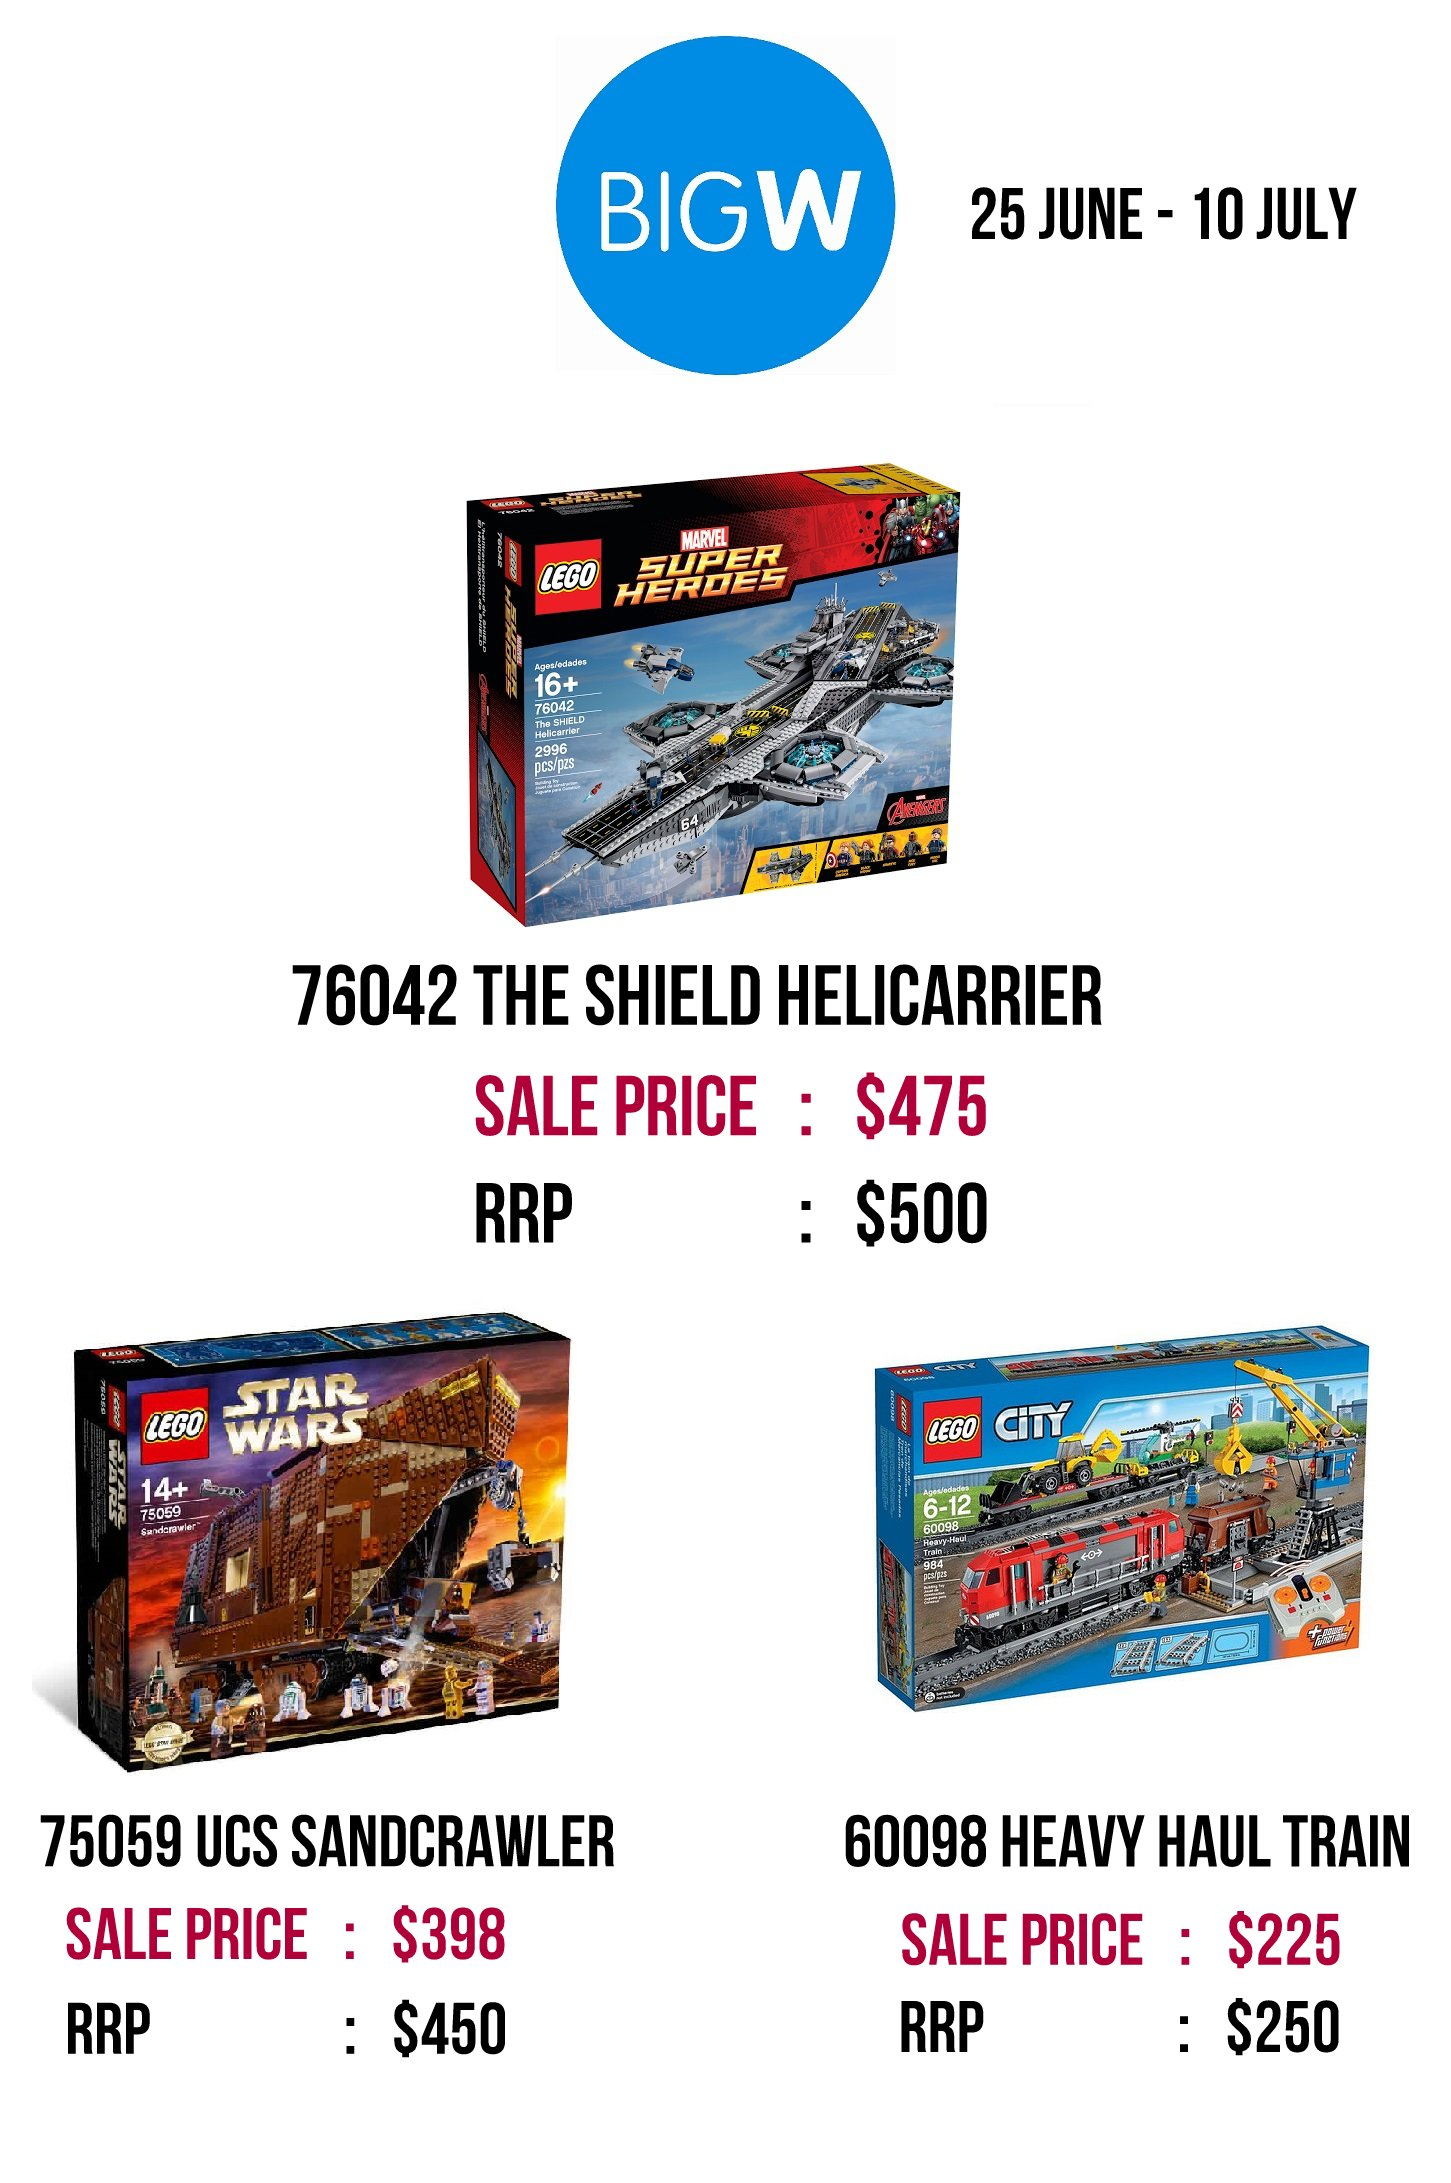 Big W Toys Catalogue Australian Toy Sale 2015 List Of Retailer Exclusive Lego Sets